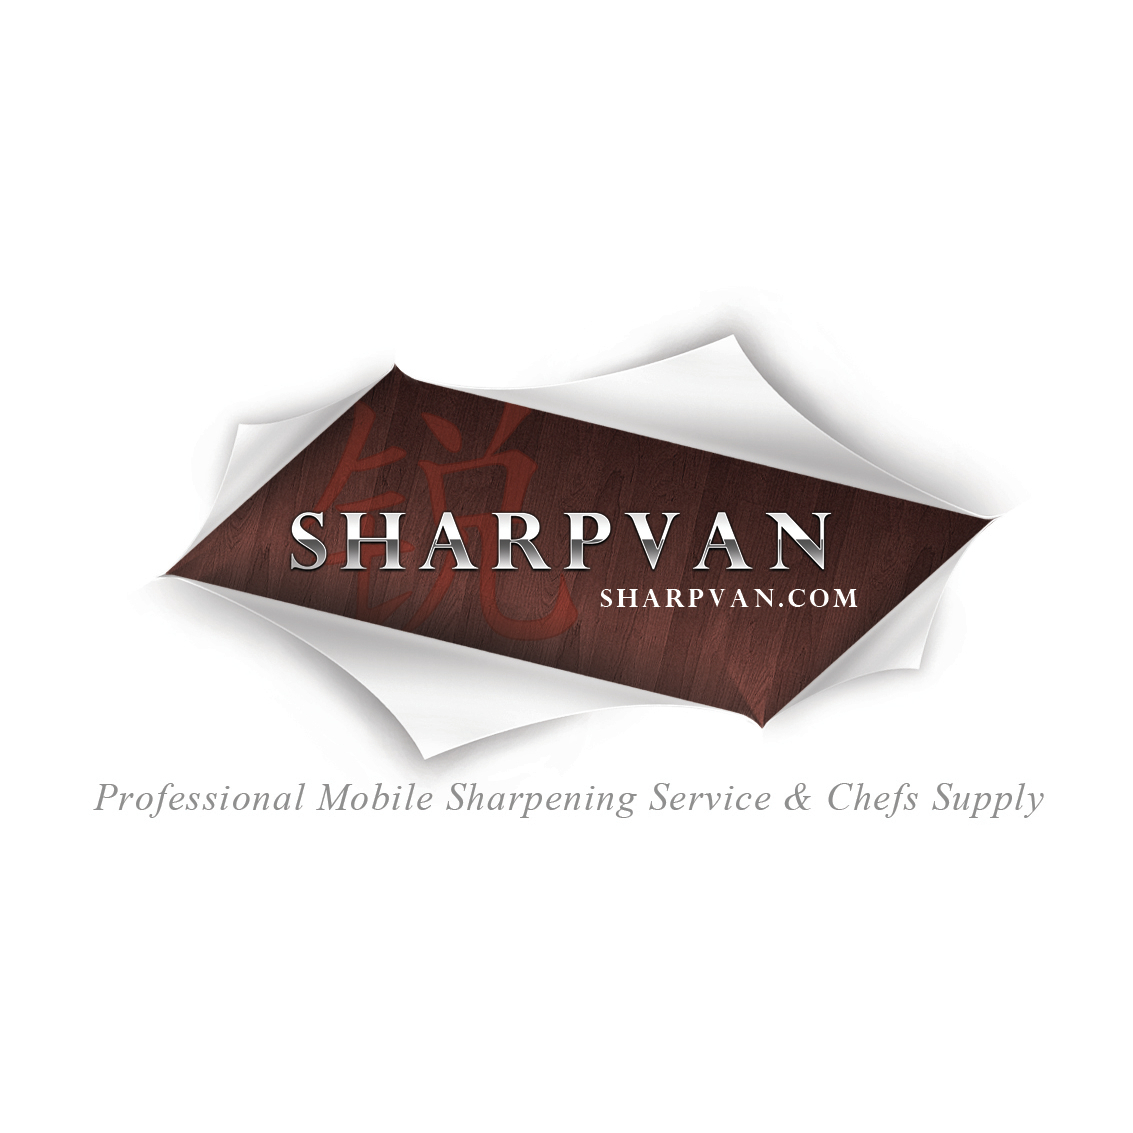 SHARPVAN Mobile Sharpening